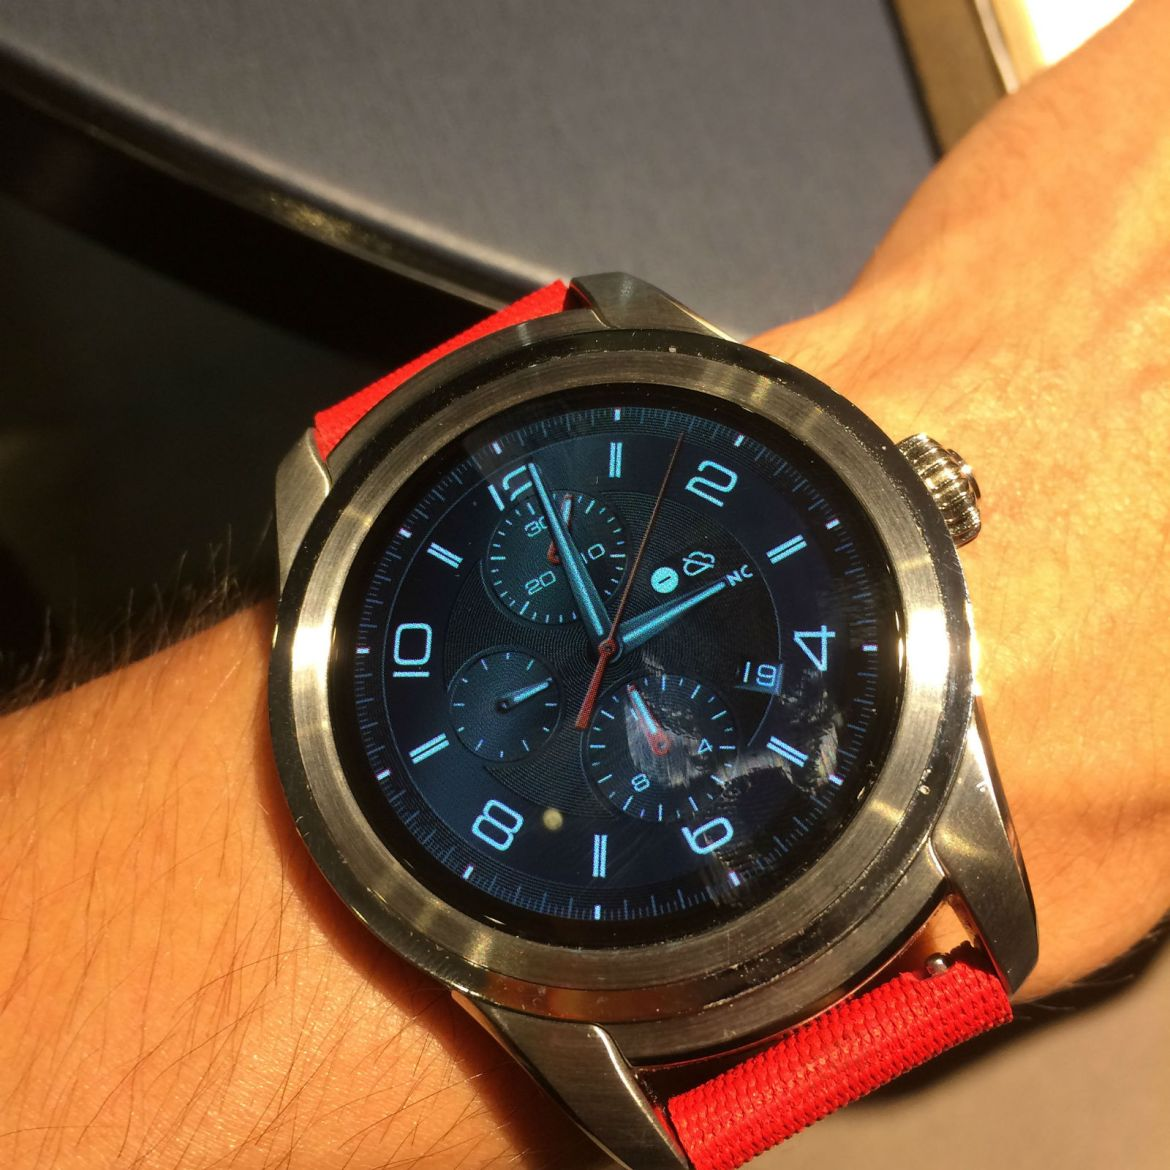 Montblanc Summit Smartwatch in polished stainless steel with red rubber strap and TimeWalker digital dial